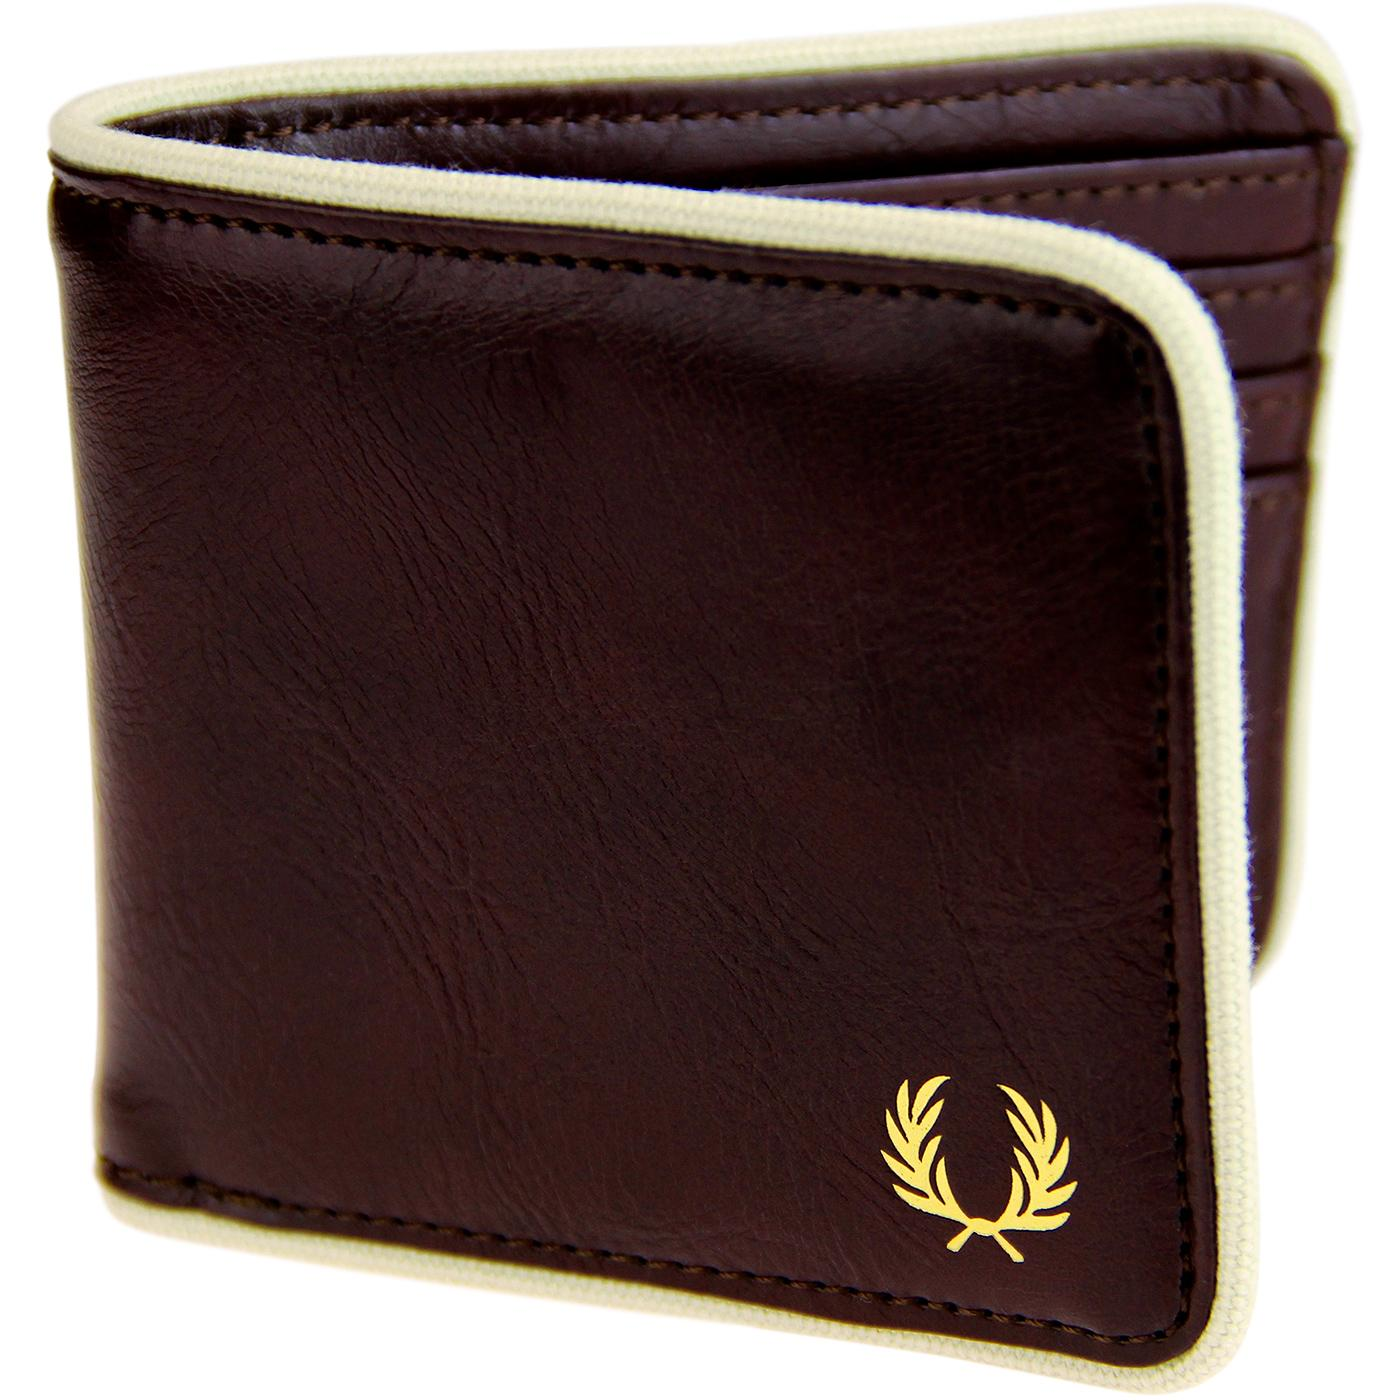 FRED PERRY Classic Logo Billfold Wallet - Port